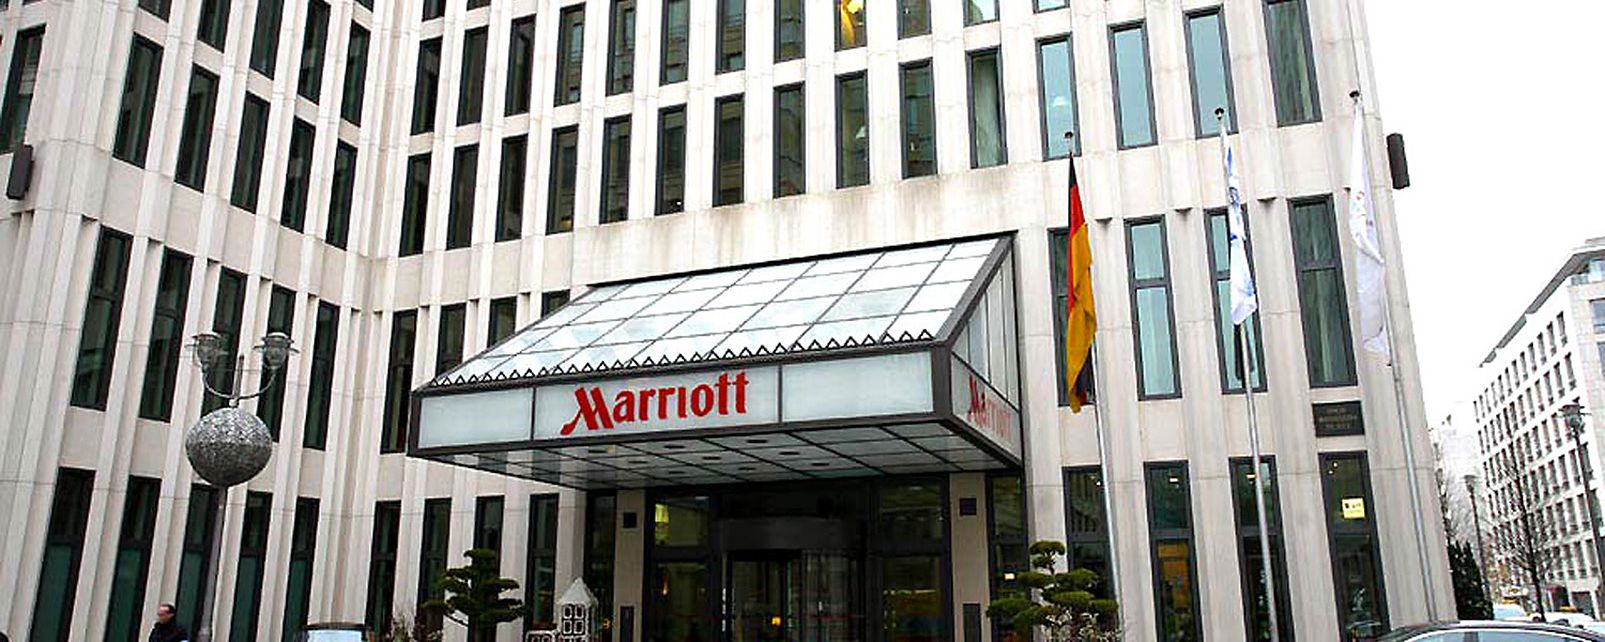 Hotel Berlin Marriott Hotel